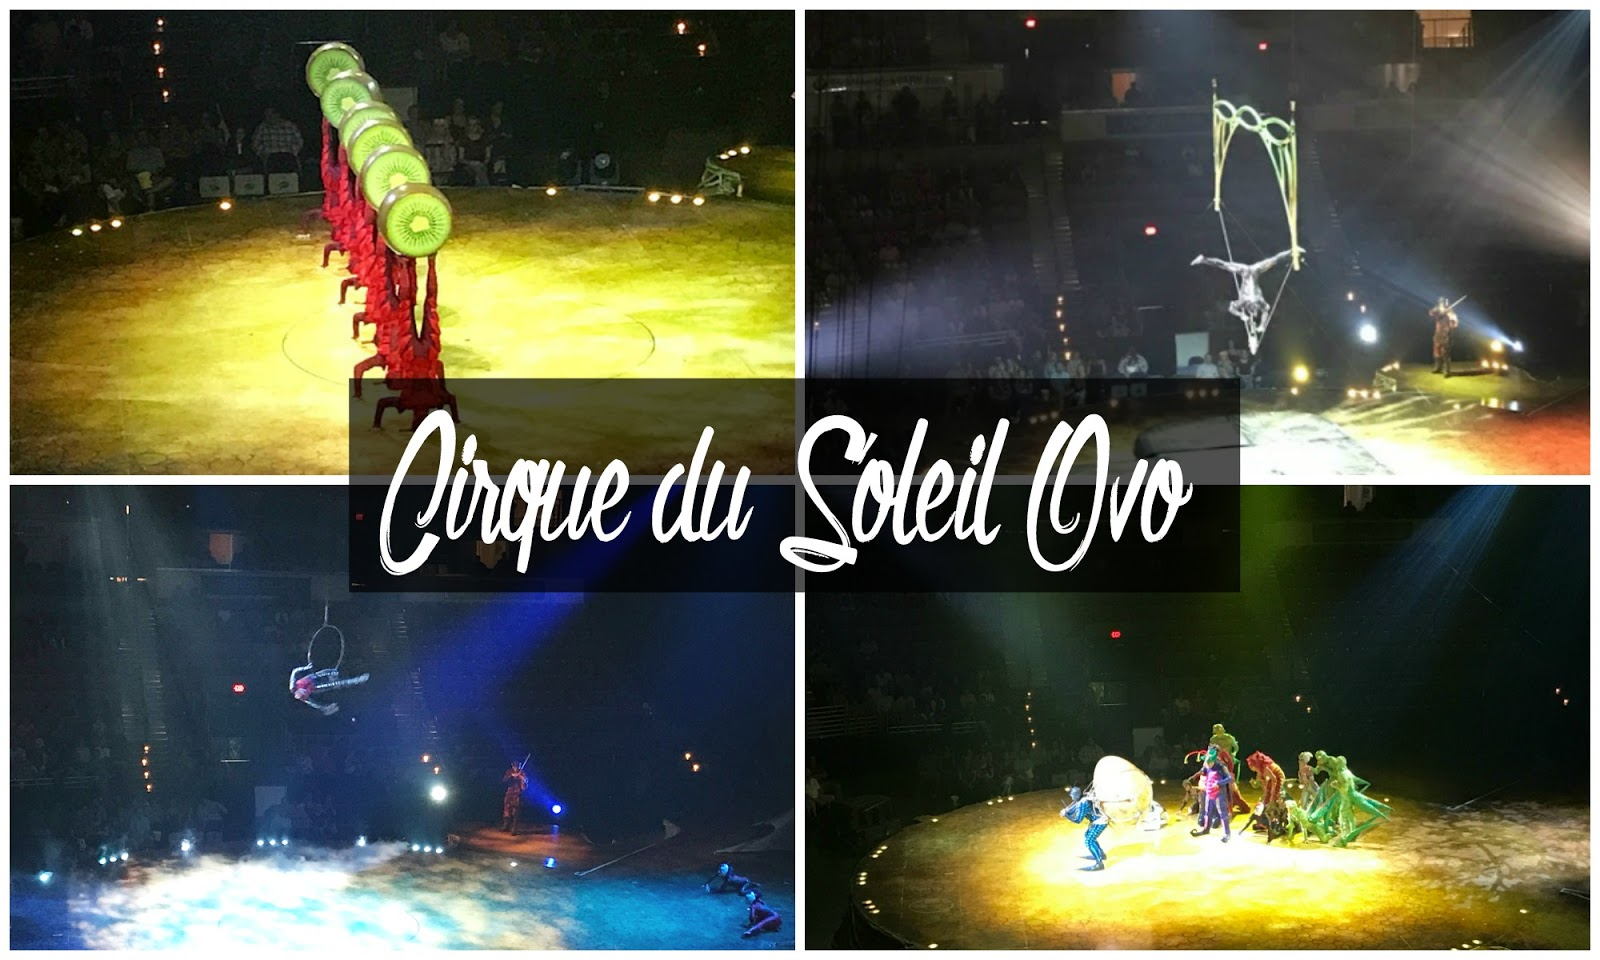 Magical, Whimsical, and Inspiring: Cirque du Soleil Ovo Review